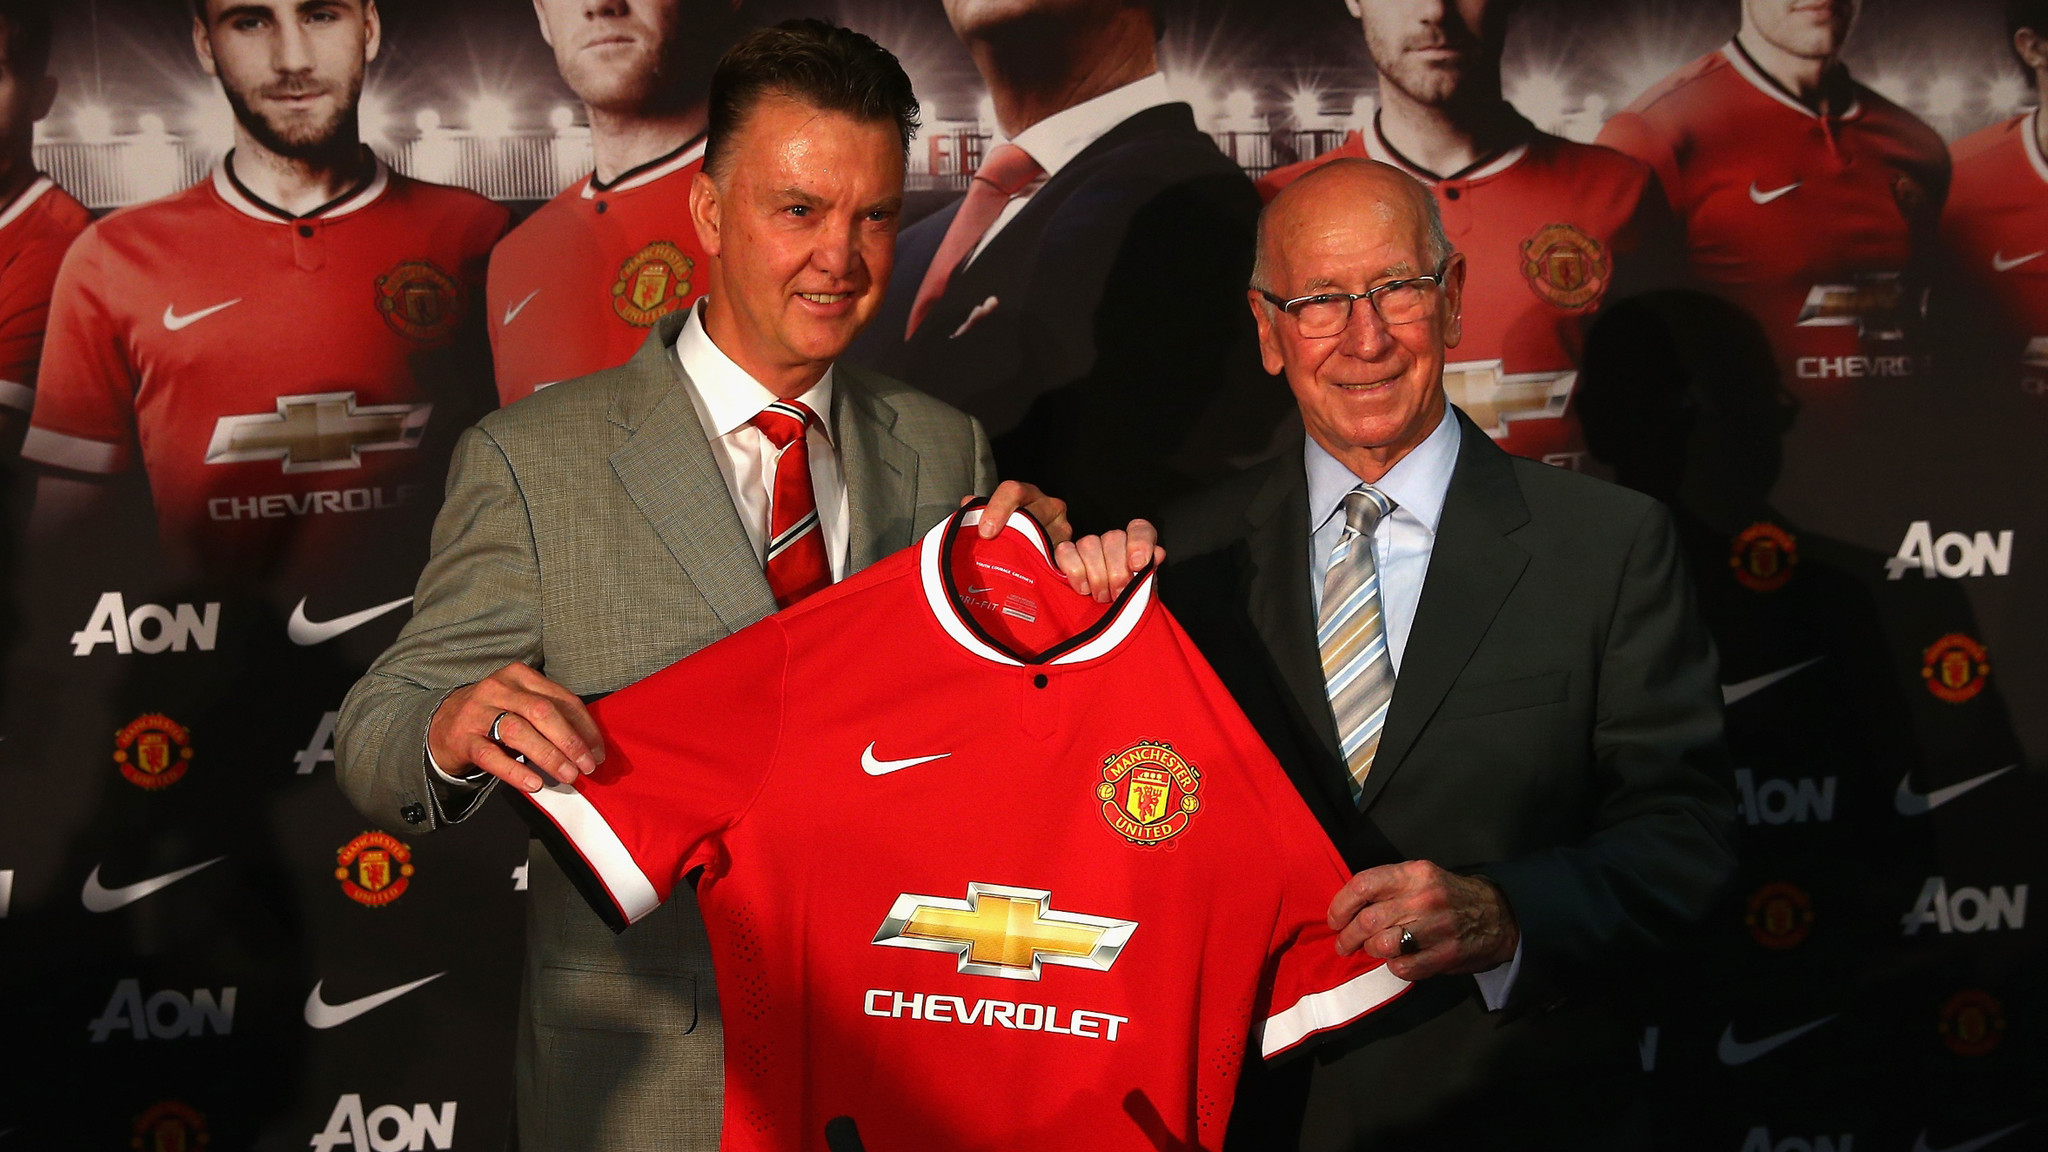 Manchester United uniform is pricey real estate as Chevrolet